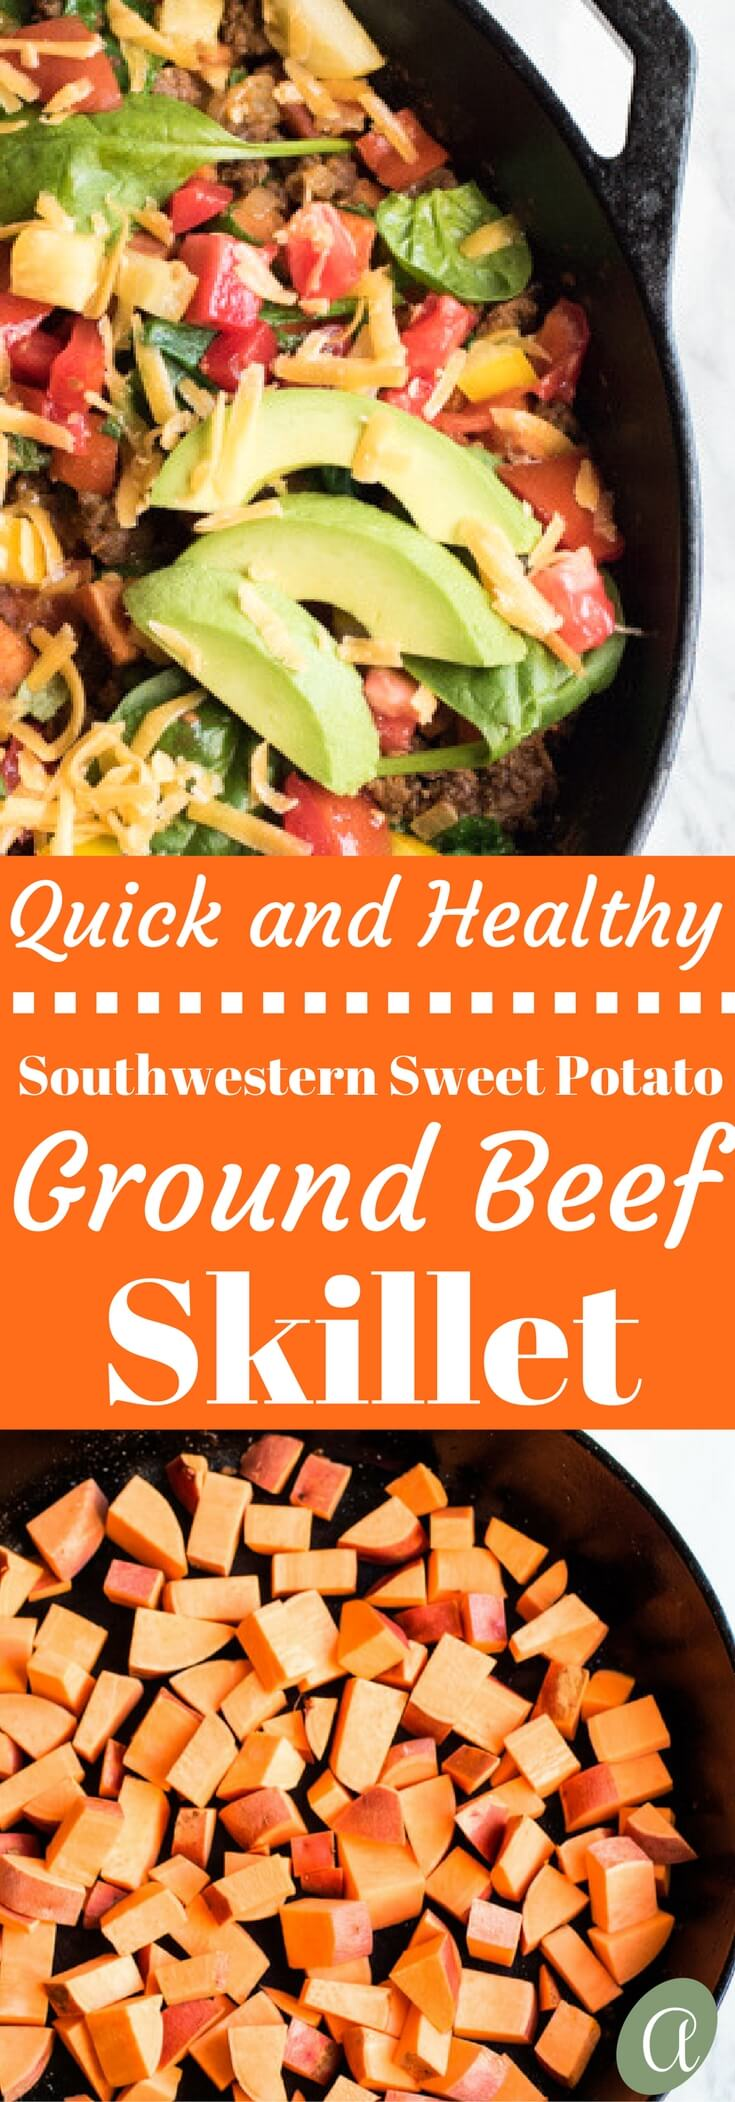 Southwestern sweet potato and ground beef skillet is loaded with fresh veggies and topped with cheese and avocado. A healthy, easy, and delicious dinner that your whole family will love. Ready in 30 minutes!